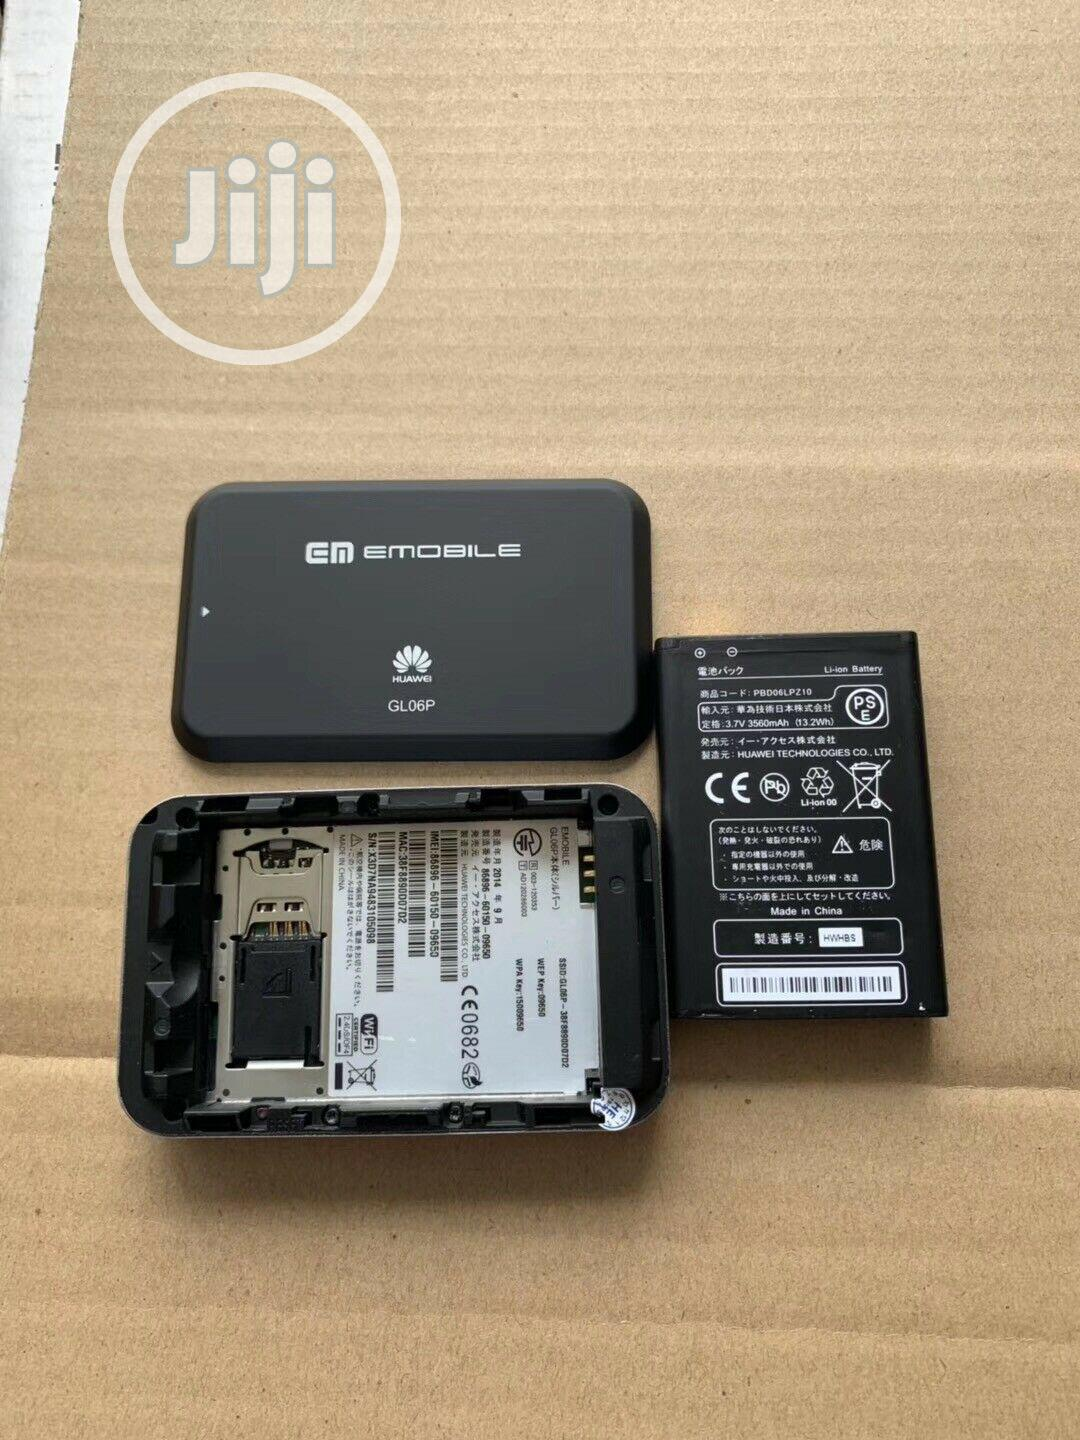 Huawei 3g/4g LTE Mobile Wi-Fi Hotspot | Networking Products for sale in Ikeja, Lagos State, Nigeria